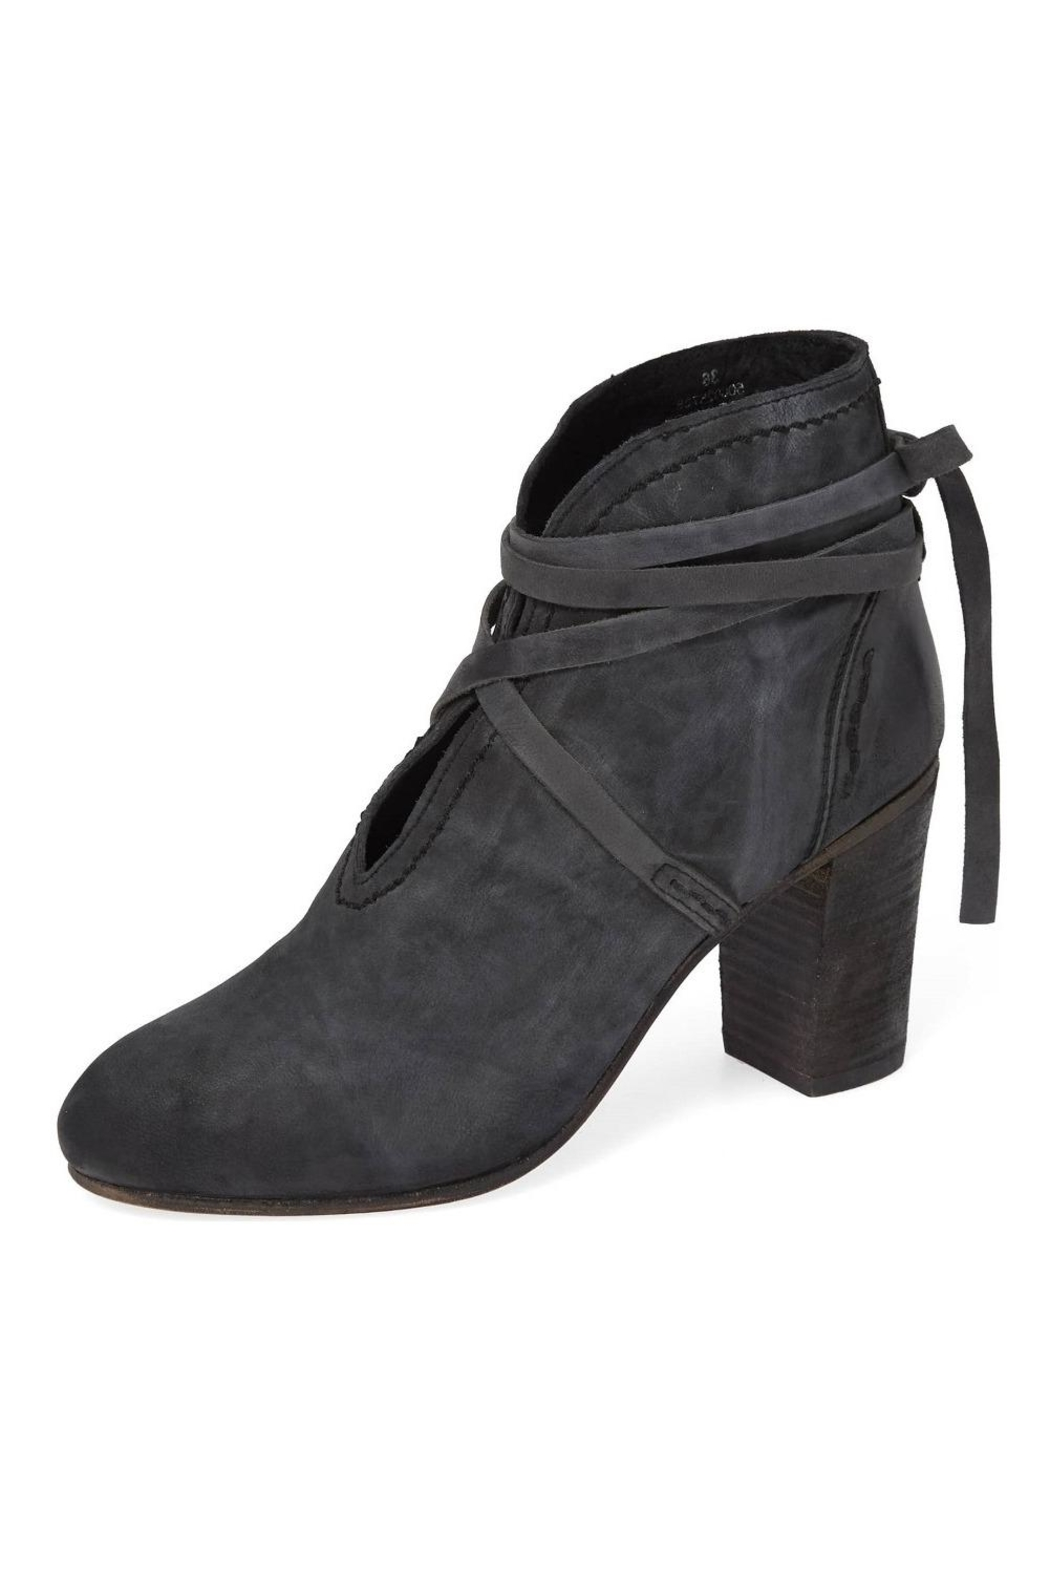 Free People Ankle Tie Bootie - Main Image